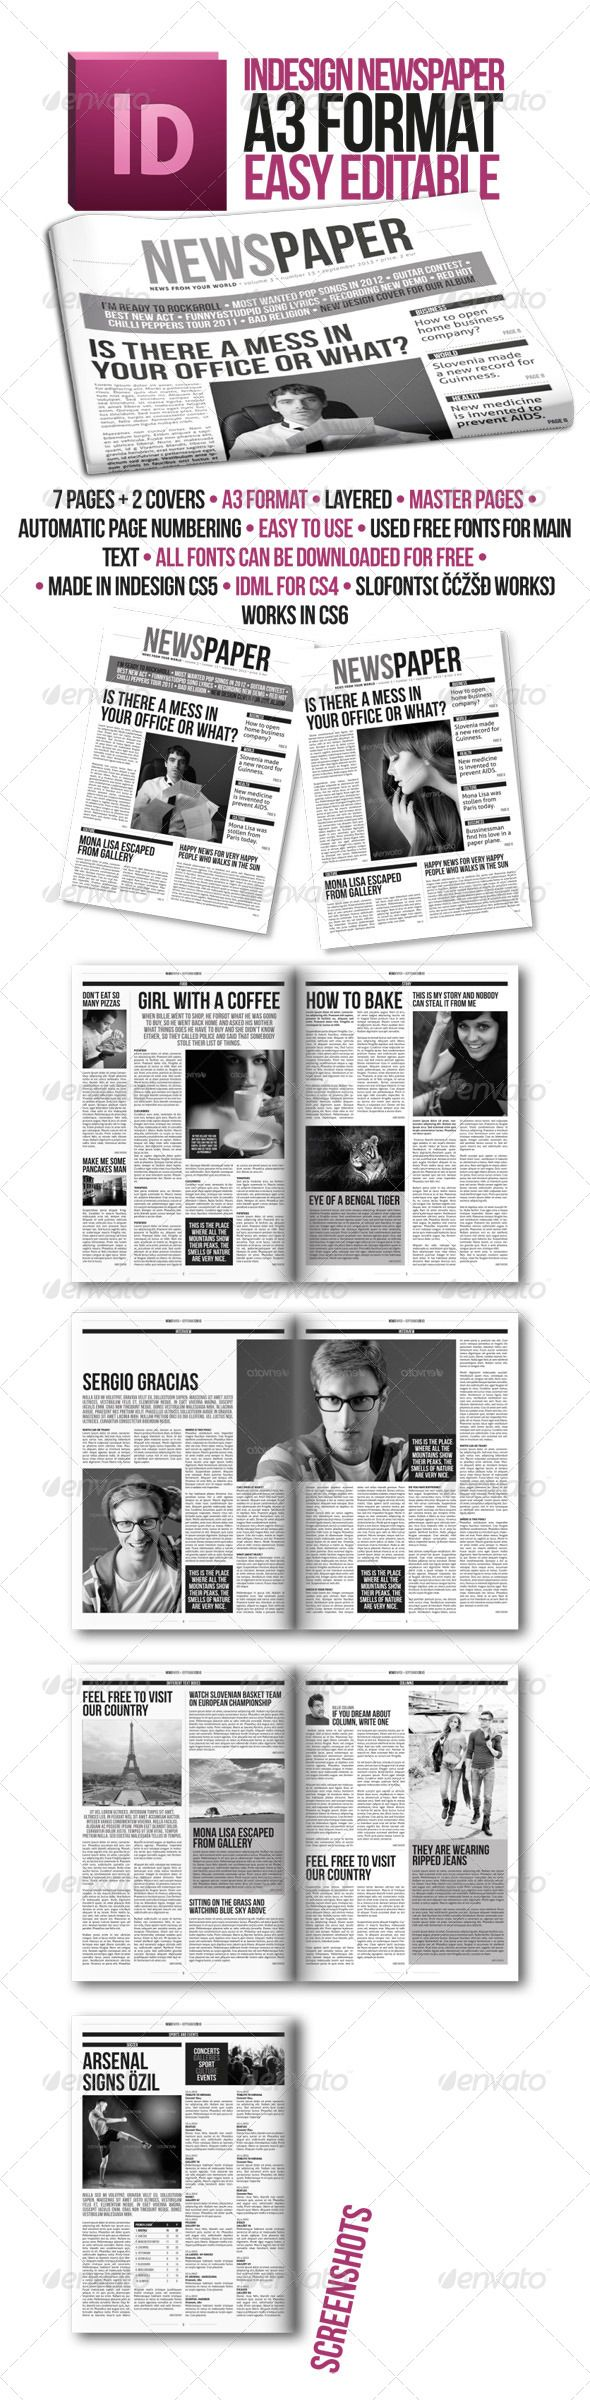 Indesign Modern Newspaper Magazine Template A3